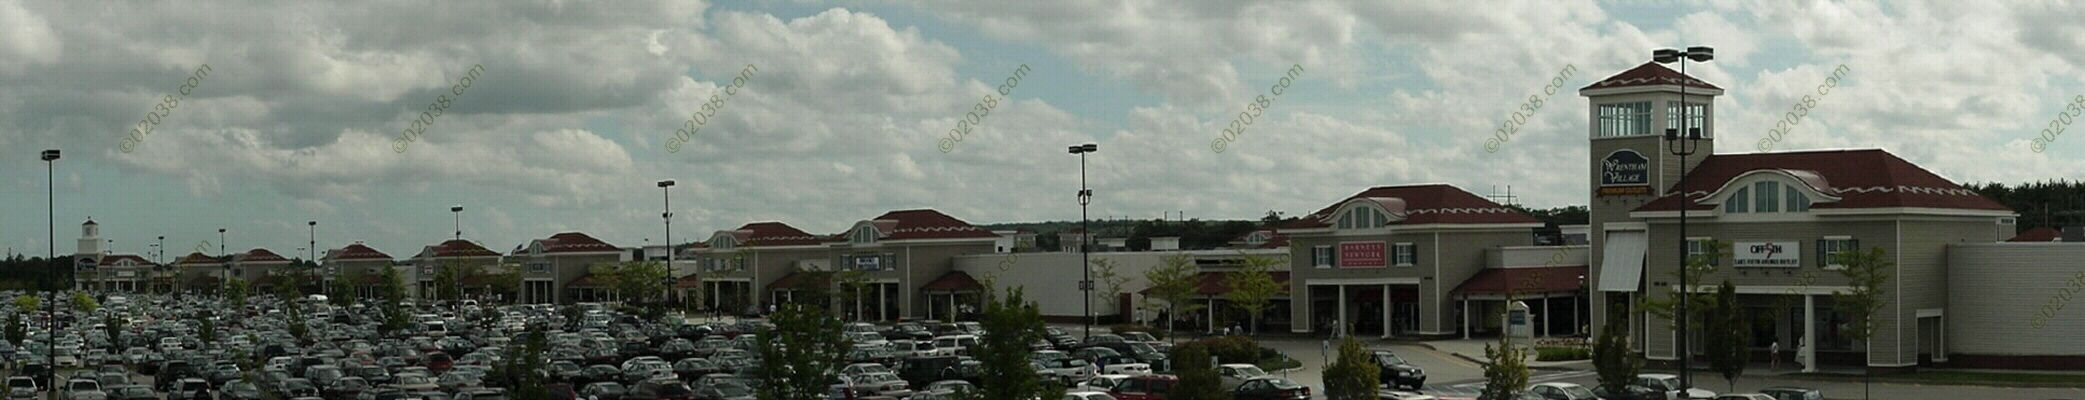 wrentham-outlets-mall.jpg